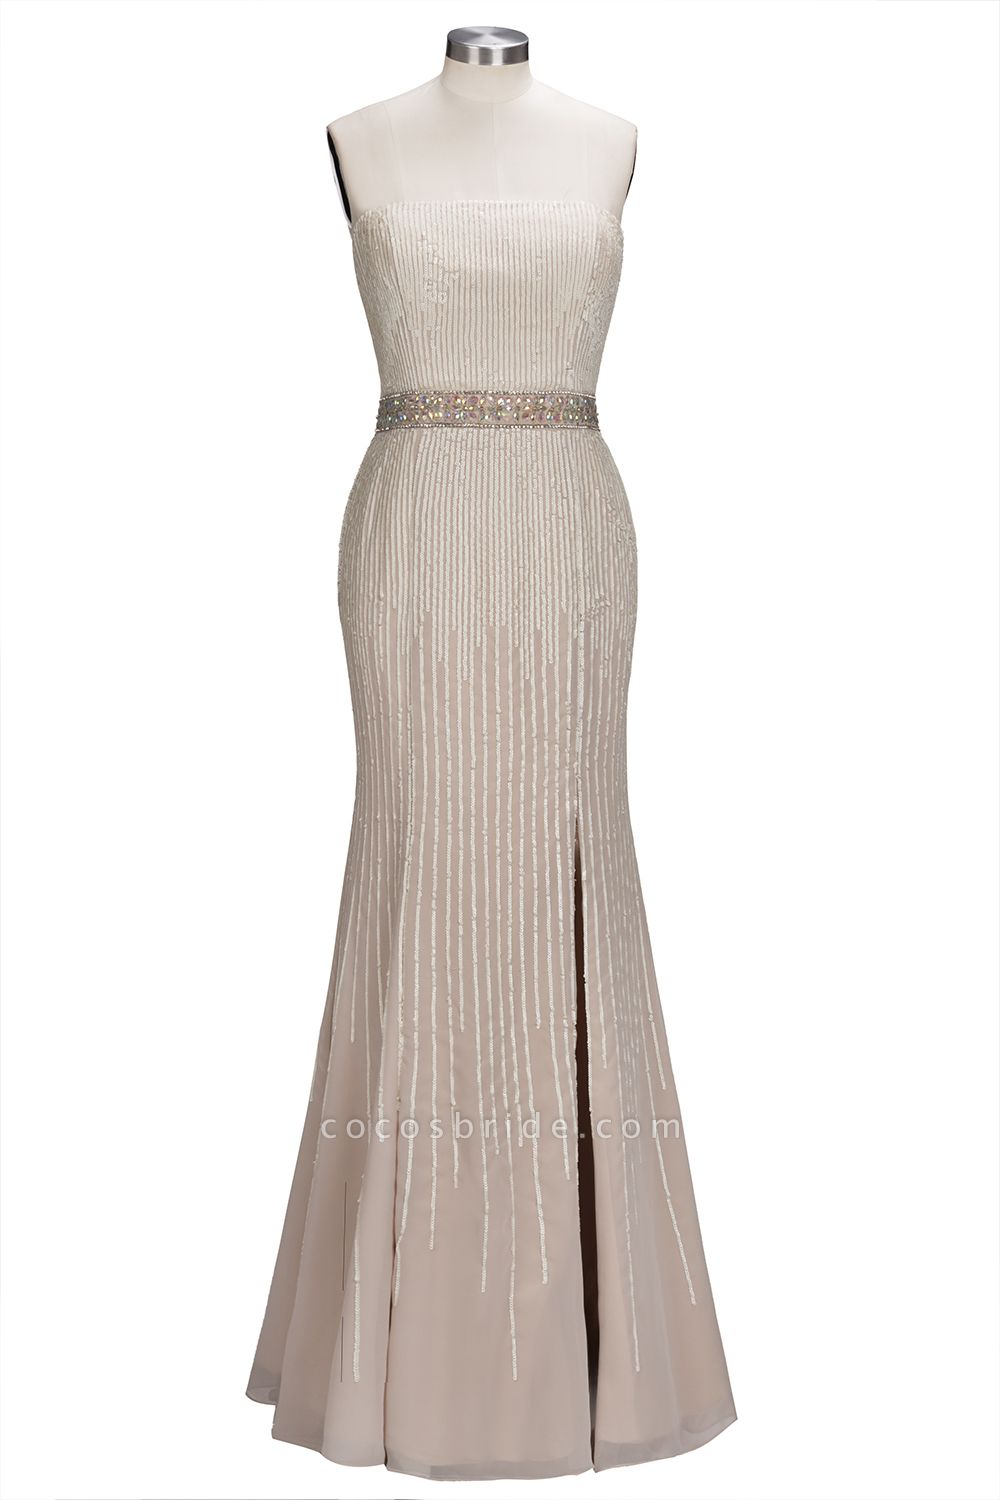 OLIVE | Mermaid Strapless Long Sequined Bridesmaid Dresses with Crystal Sash